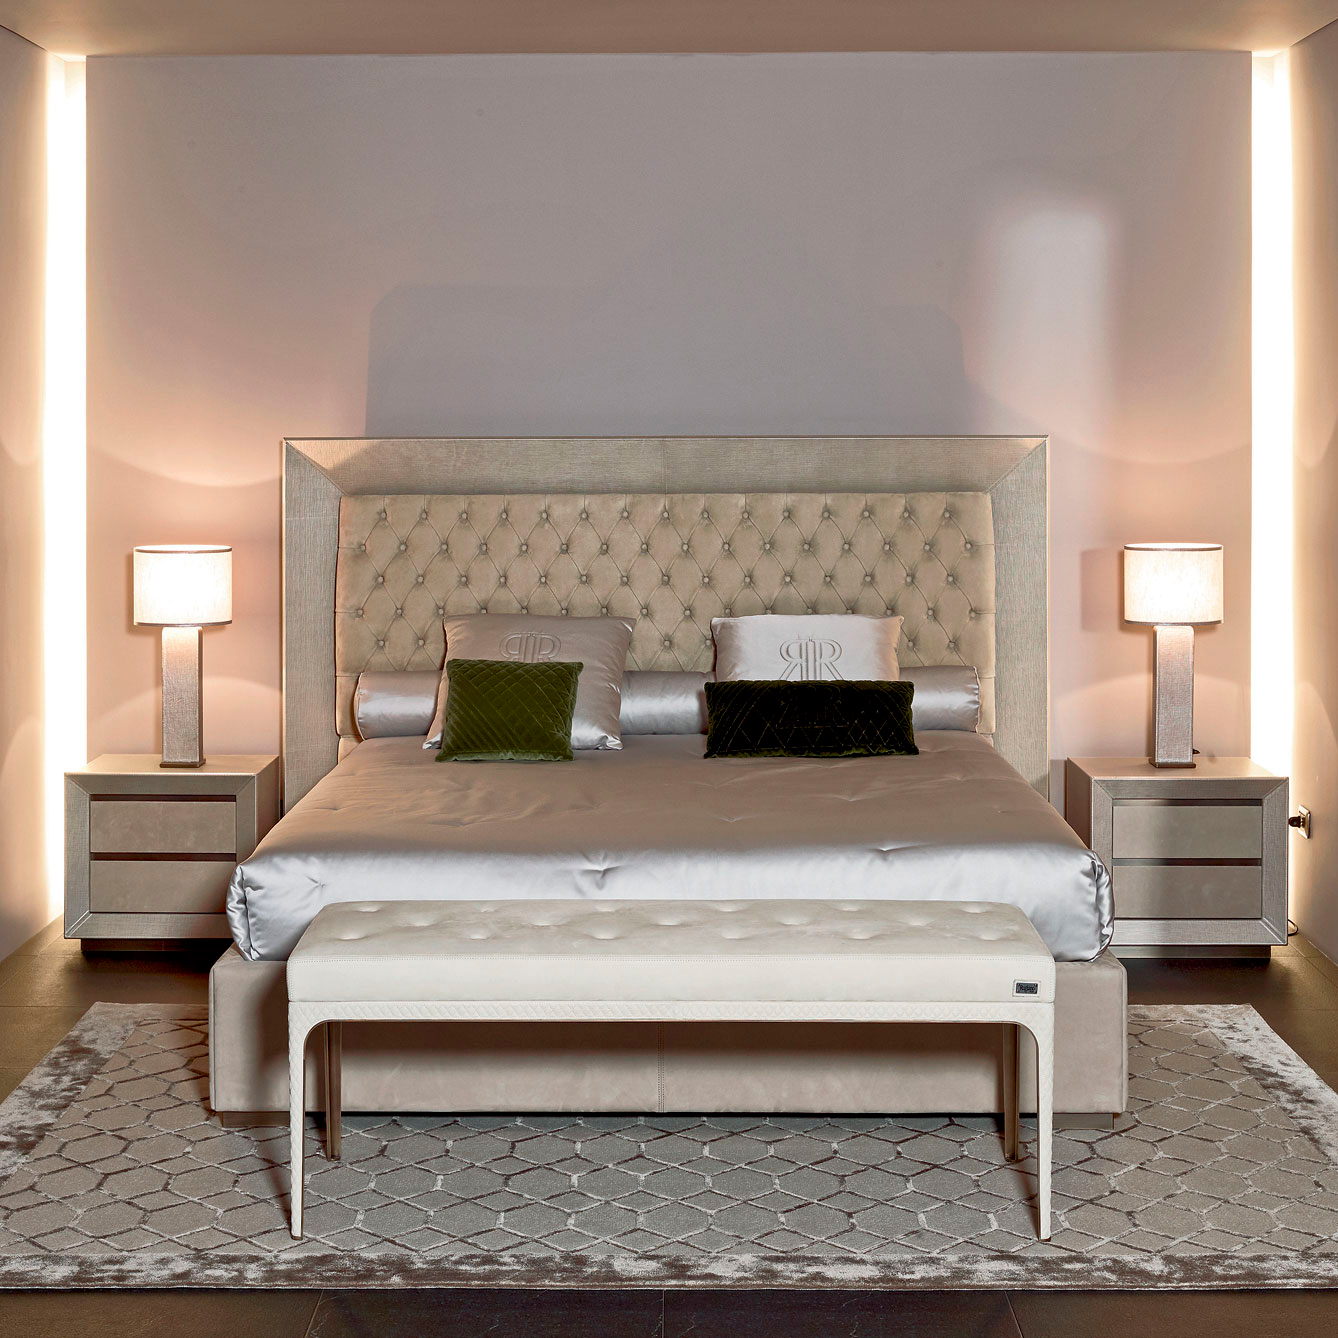 Luxury Italian Designer Kenya Bed Italian Designer Luxury Furniture At Cassoni